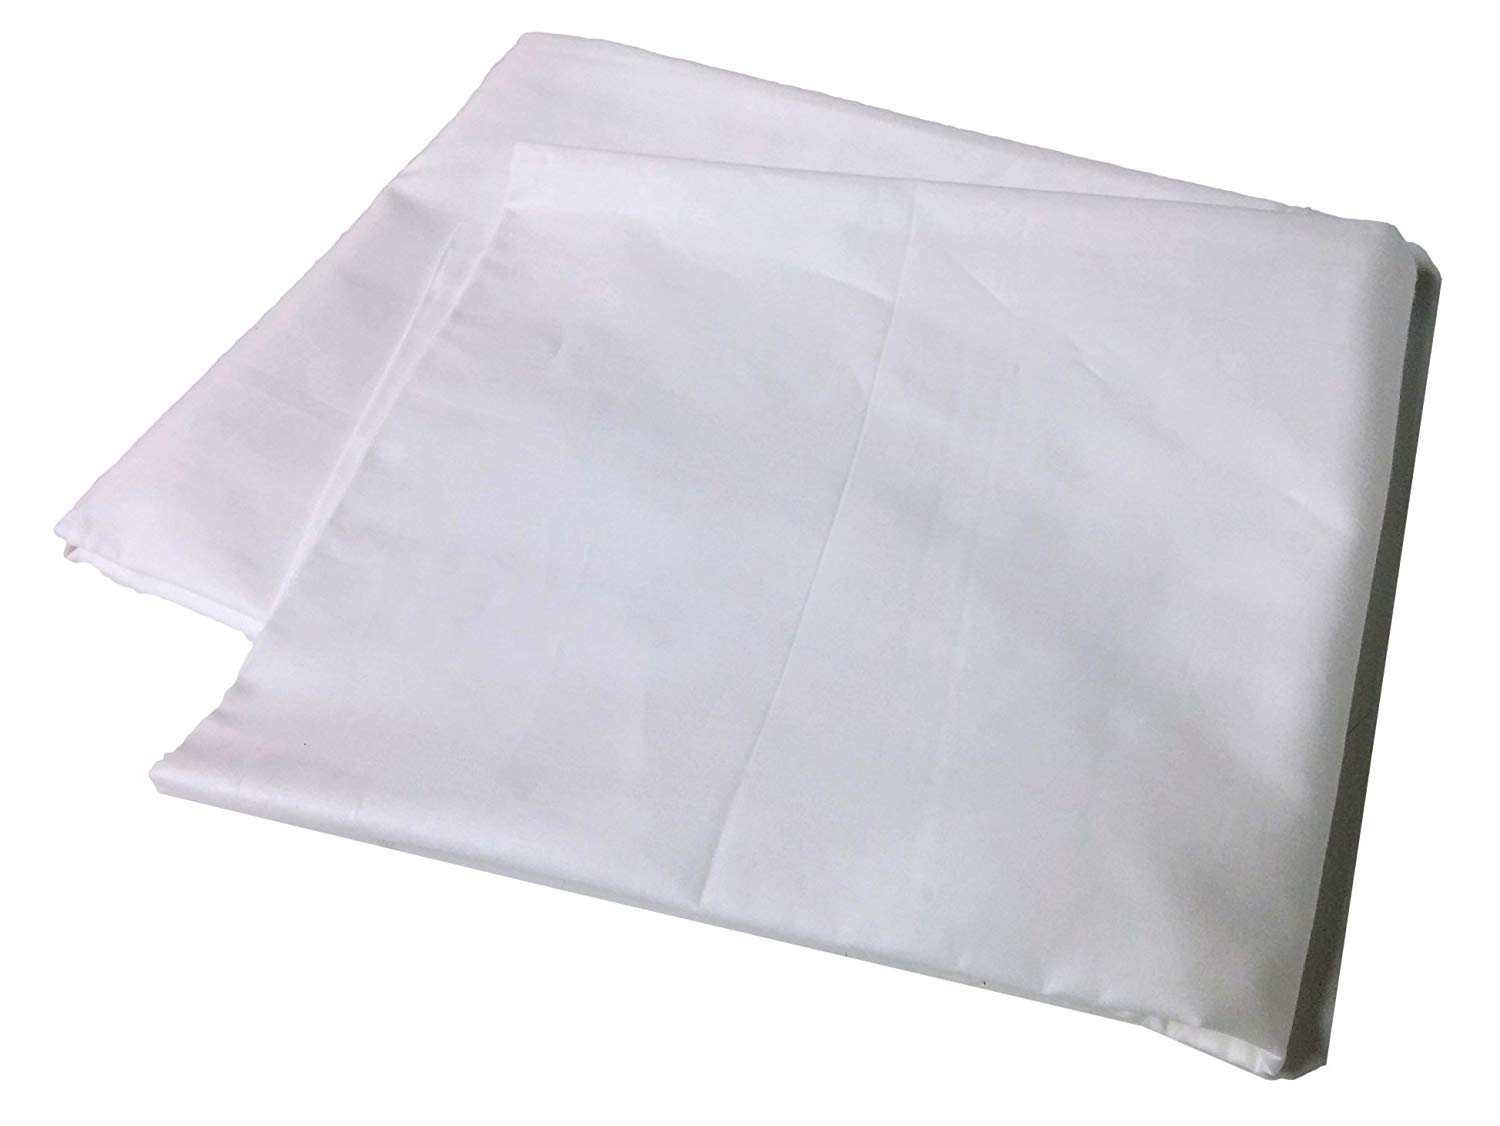 Body Pillow Cover Pillowcase, 400 Thread Count, 100% Cotton, 20 x 54 Non-zippered Enclosure, 6 Colors Available (White)